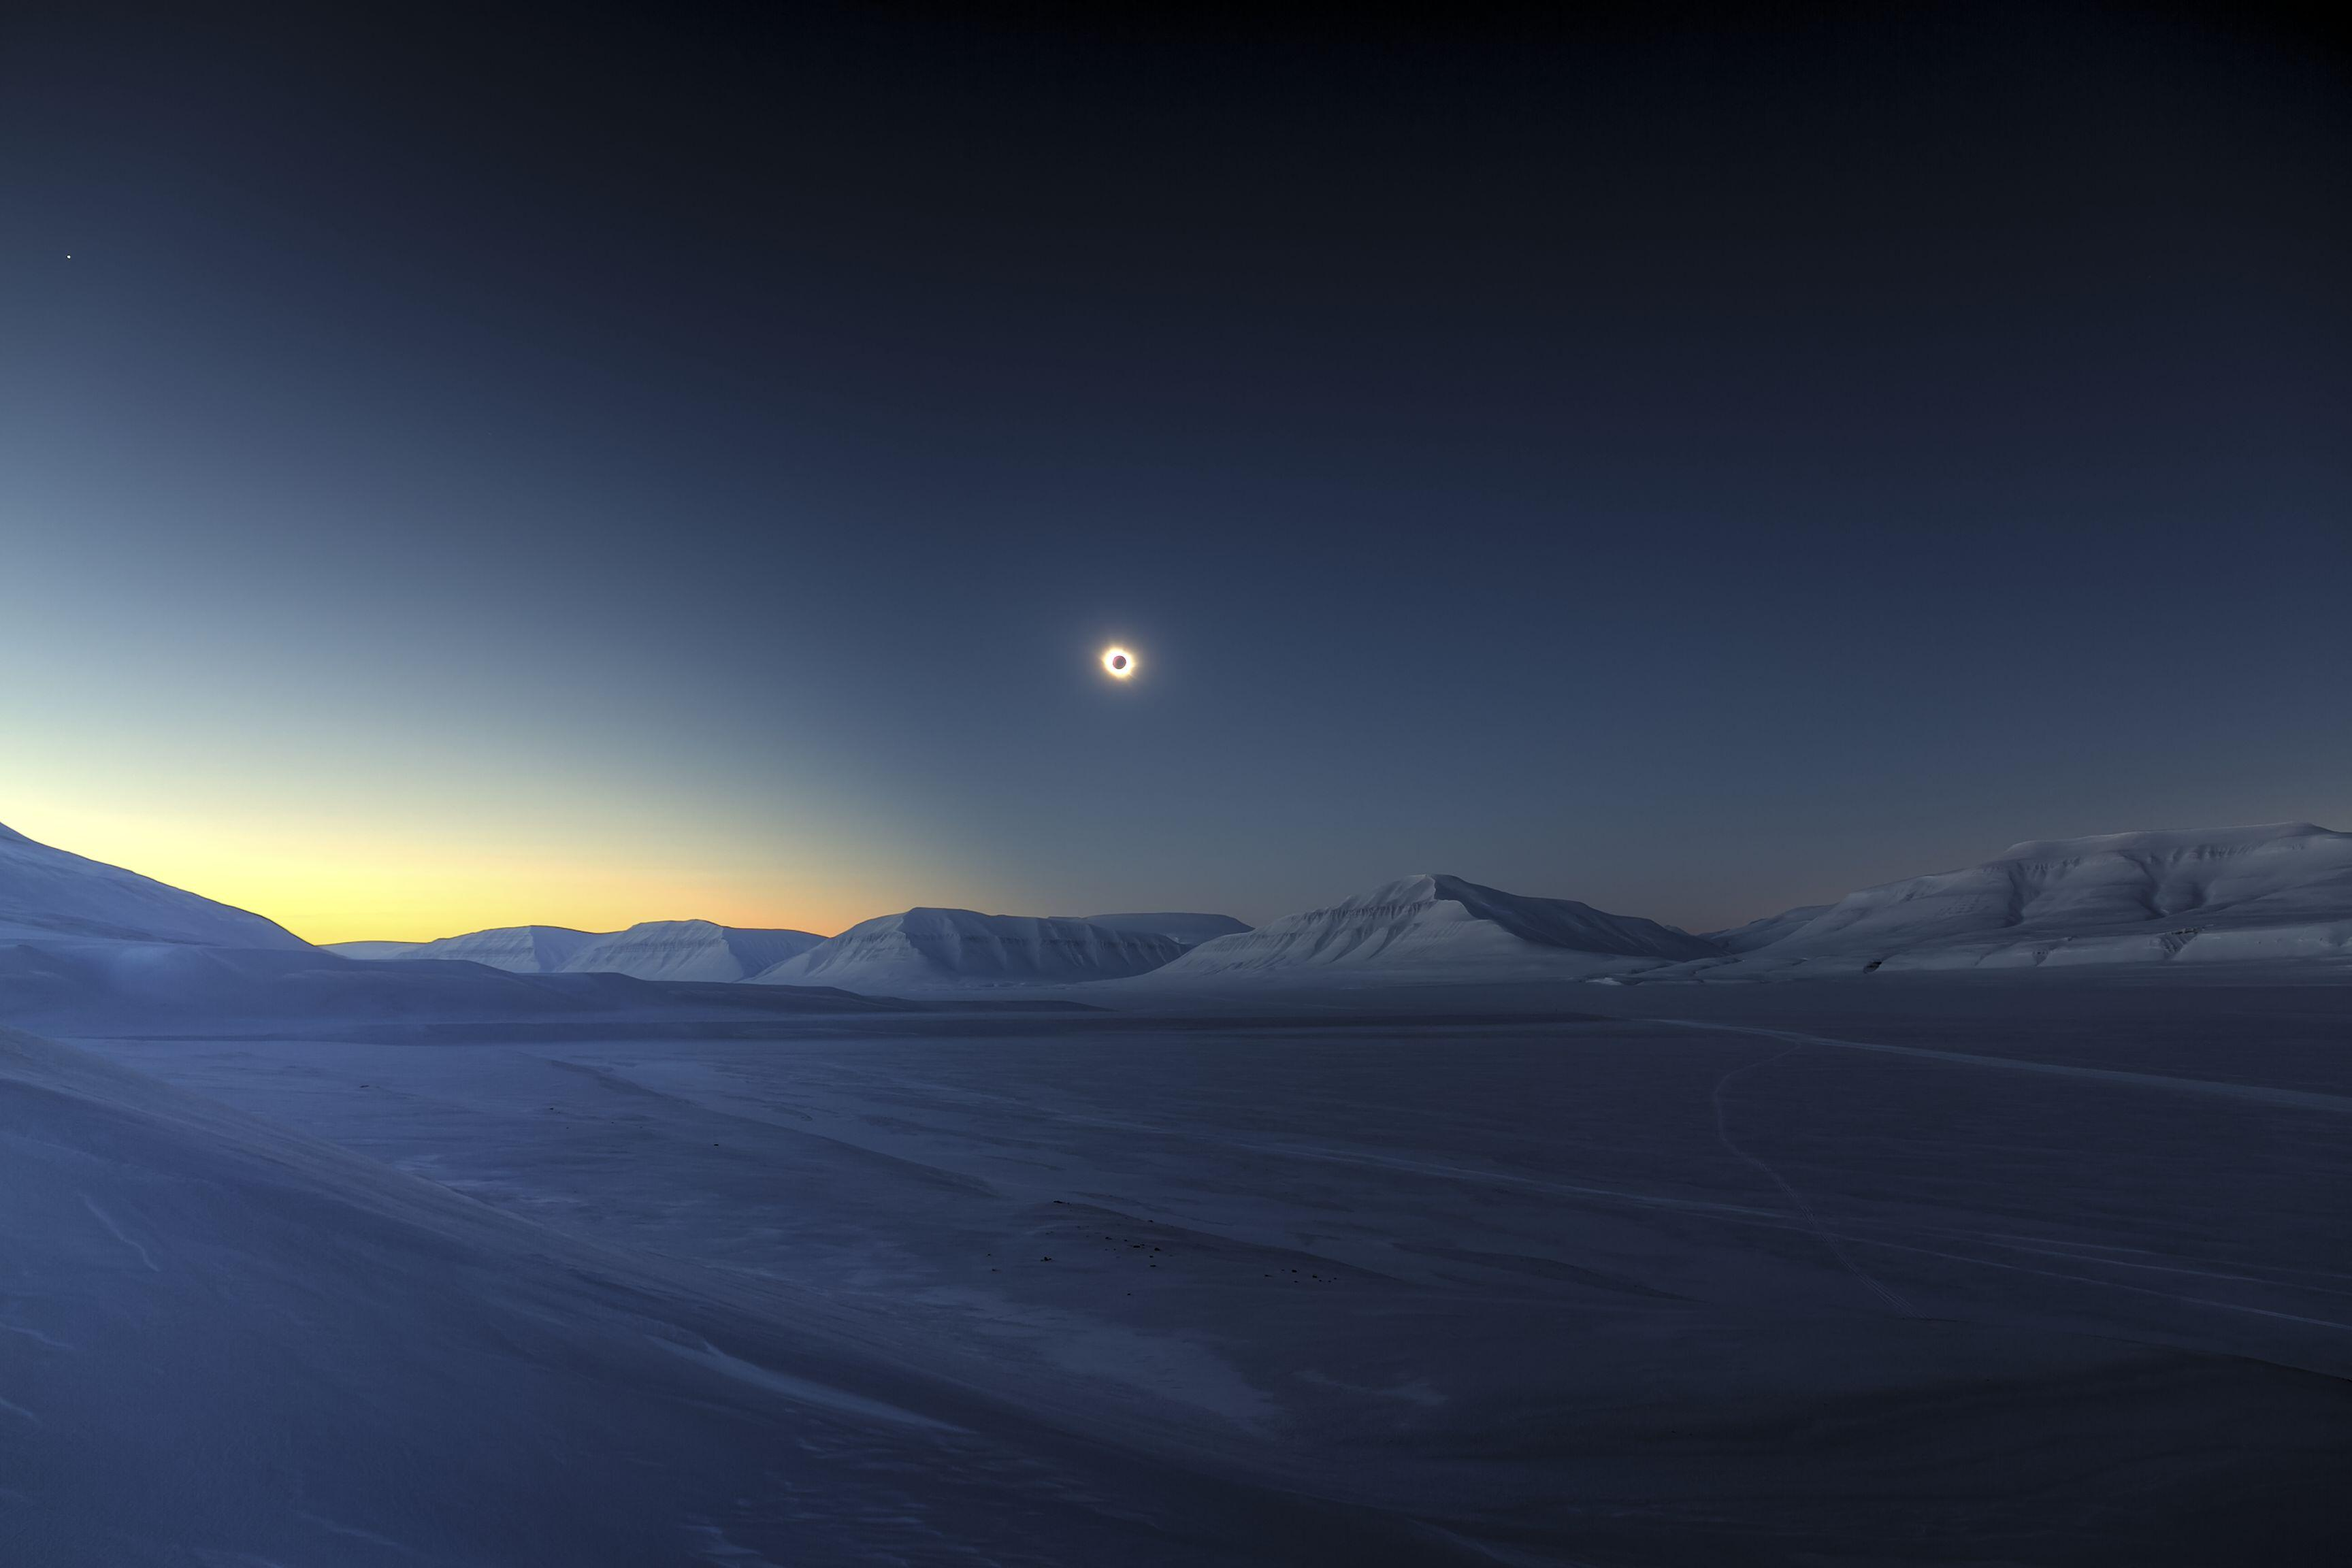 Bild zu Luc Jamet (France) with Eclipse Totality over Sassendalen